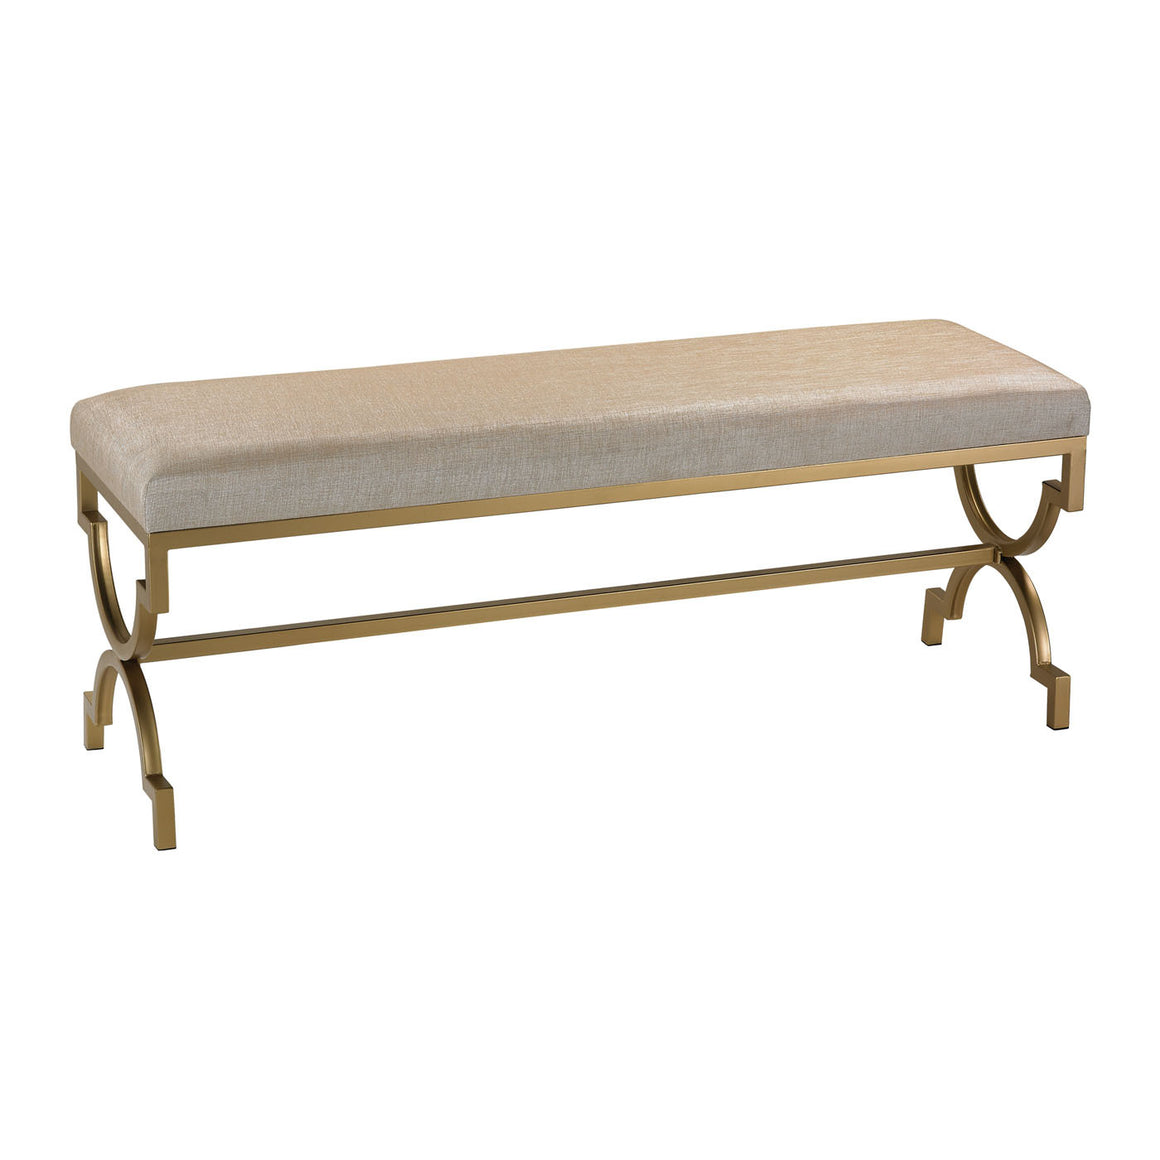 Double Bench in Cream Metallic Linen 180-003 by Sterling